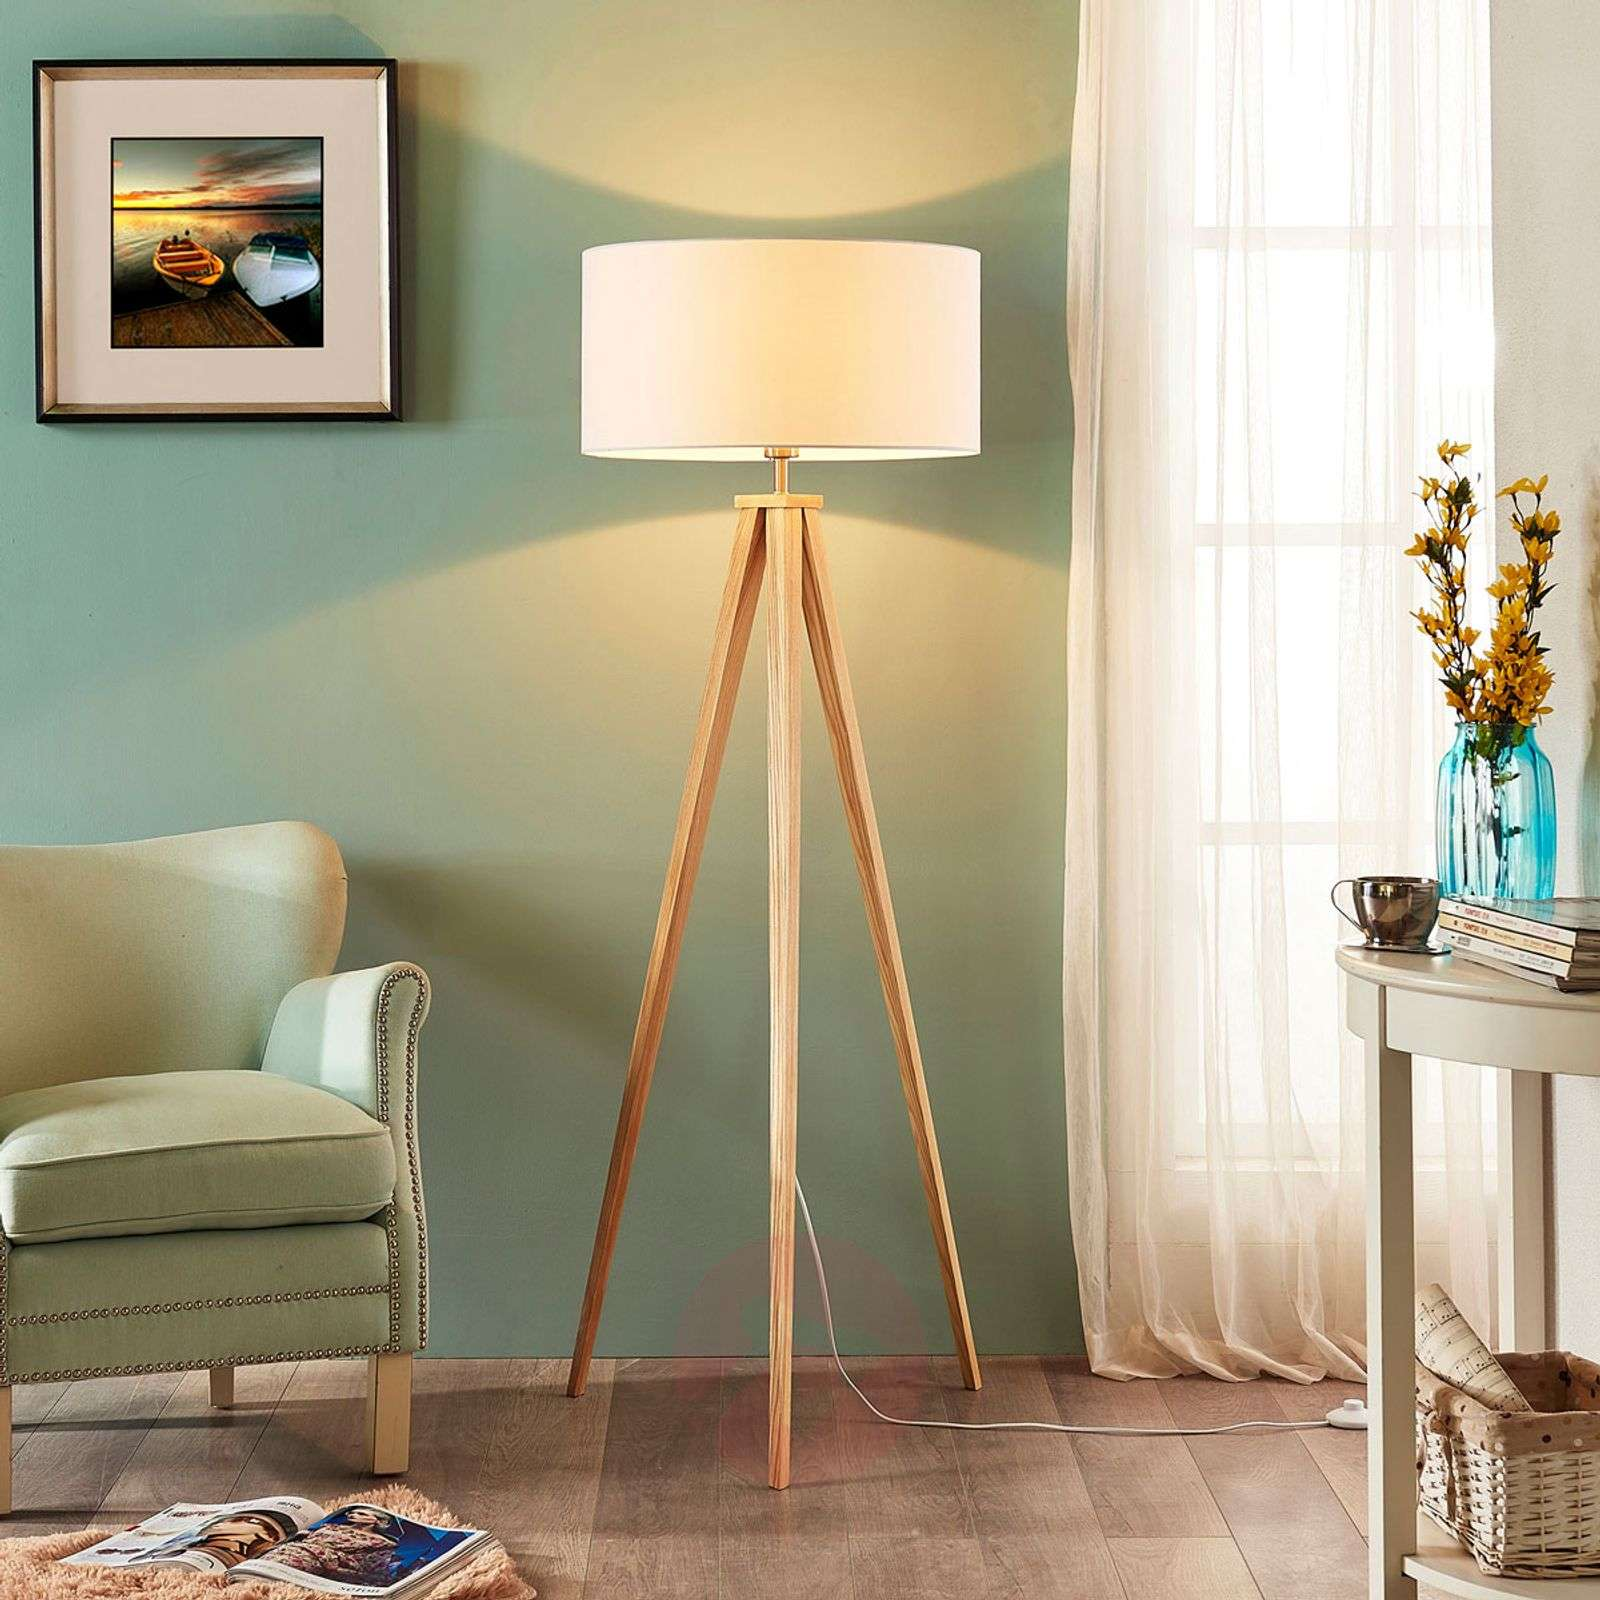 Tripod Wooden Floor Lamp Mya With Wooden Lampshade Lights